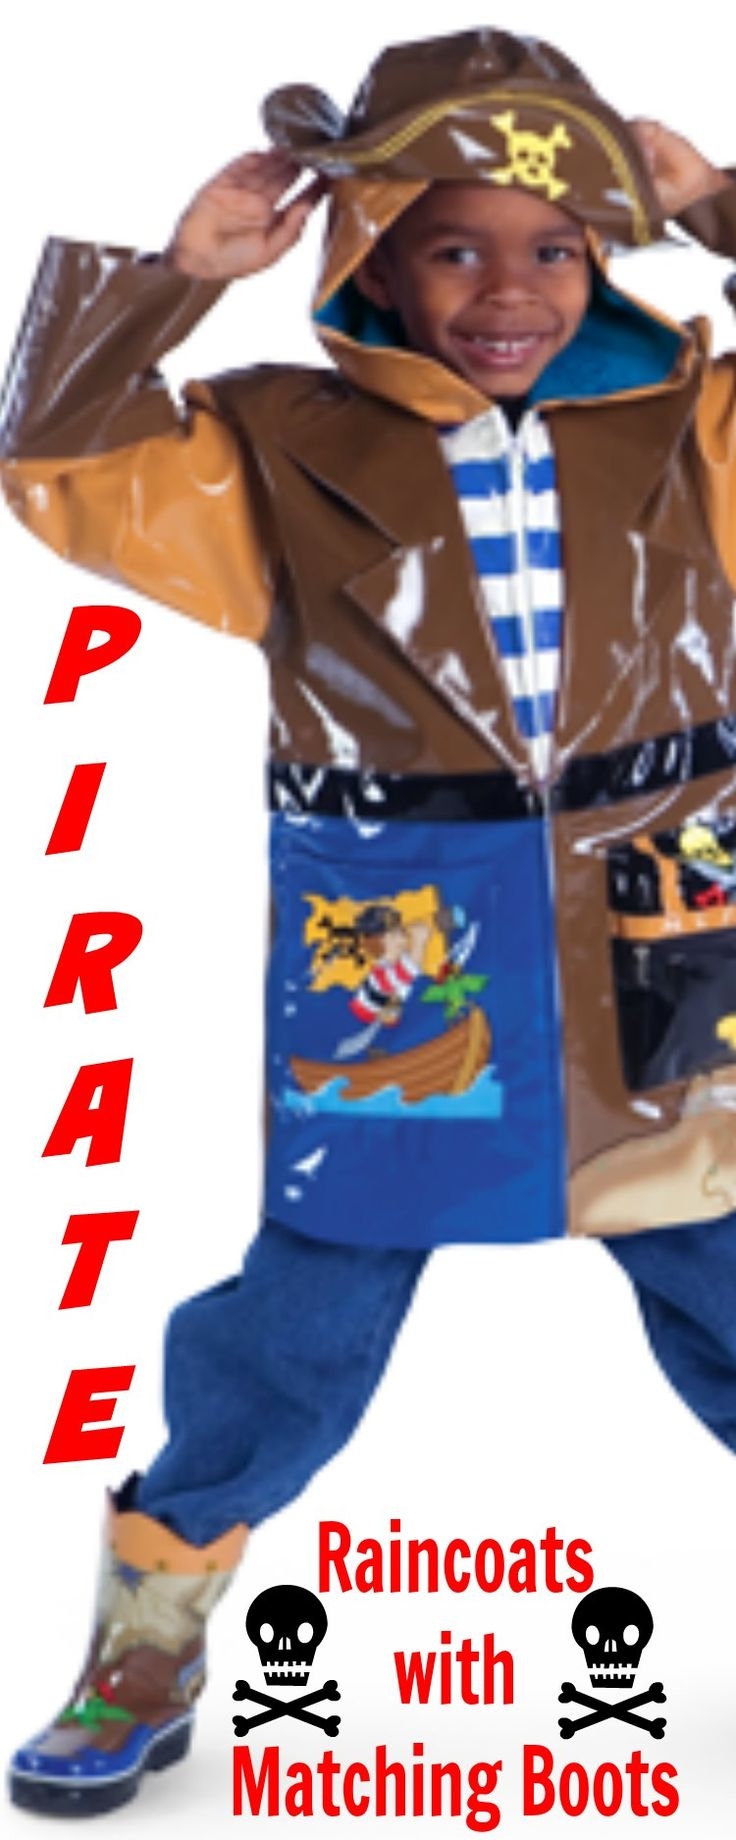 Children Raincoats with Matching Boots - My grandsons love Pirates, so these are the perfect kids raincoat with matching boots for them. We may never get them inside.